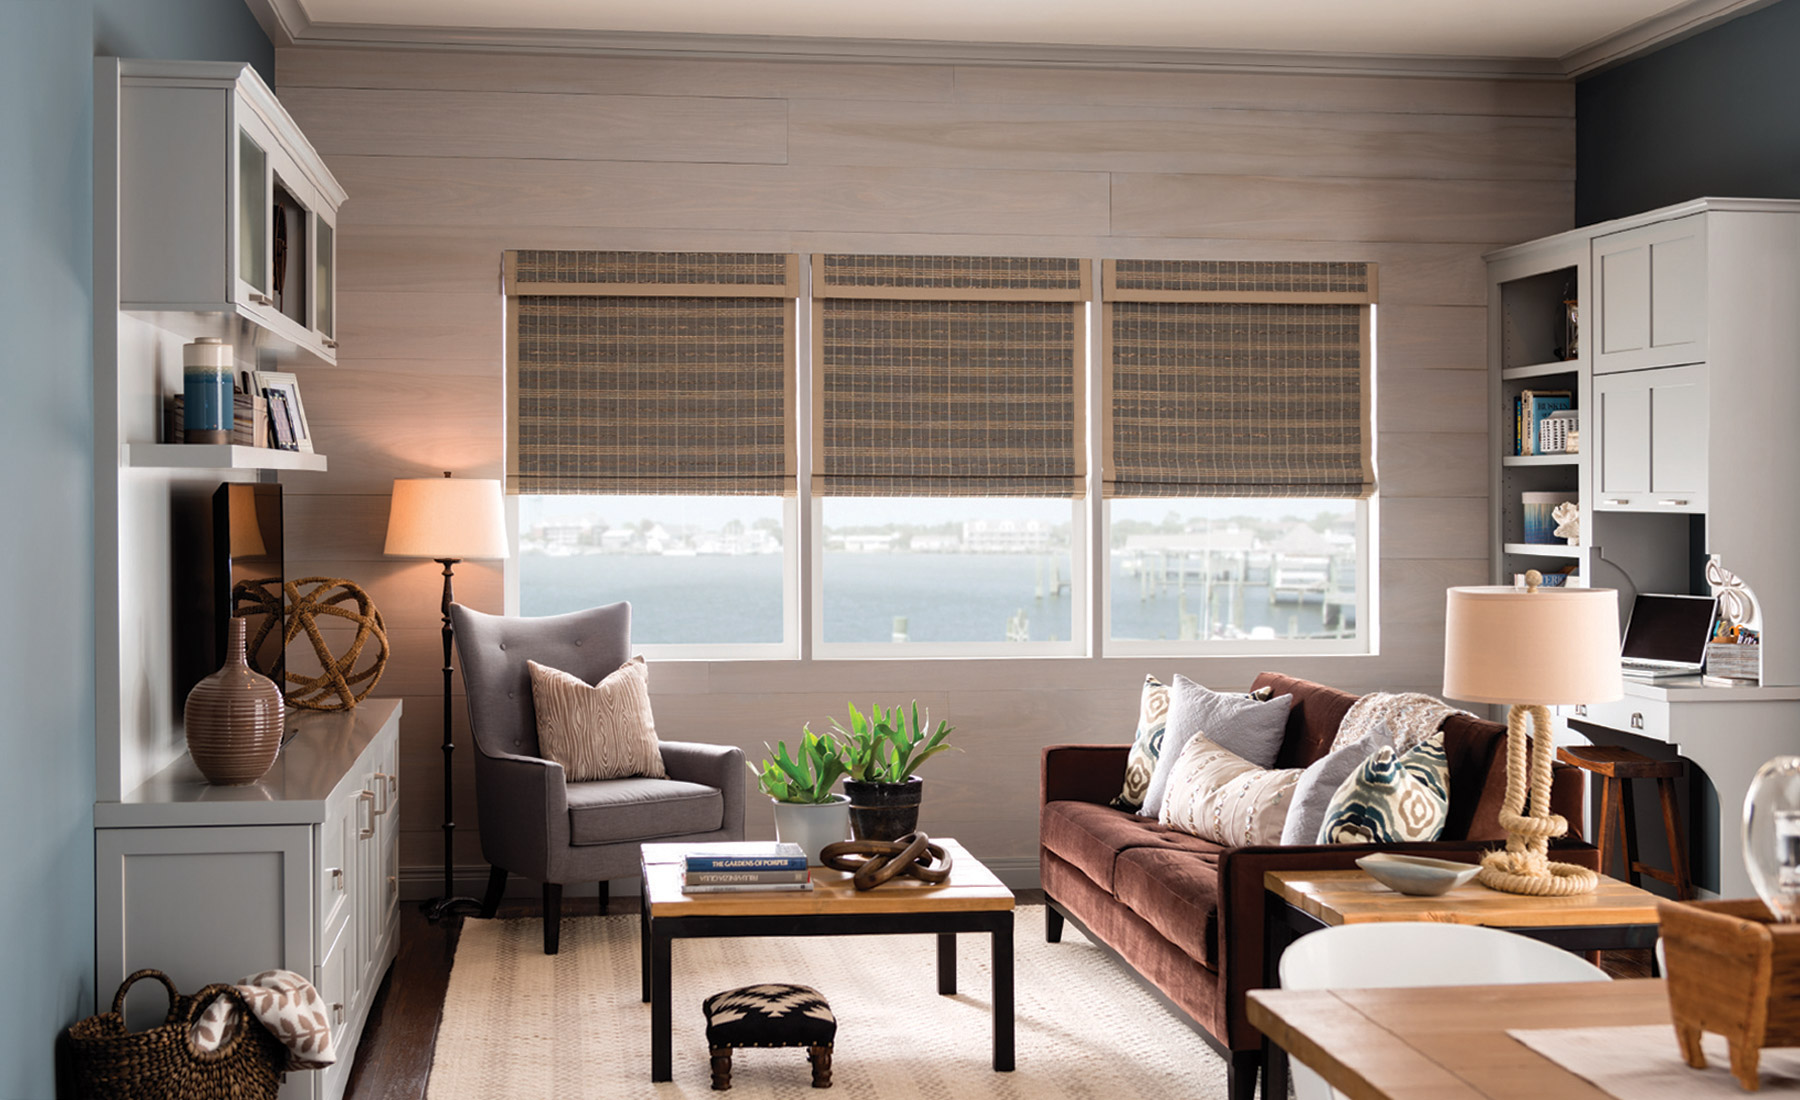 Bedroom Blinds Ideas Set Property interior design fancy bali blinds for window decor ideas